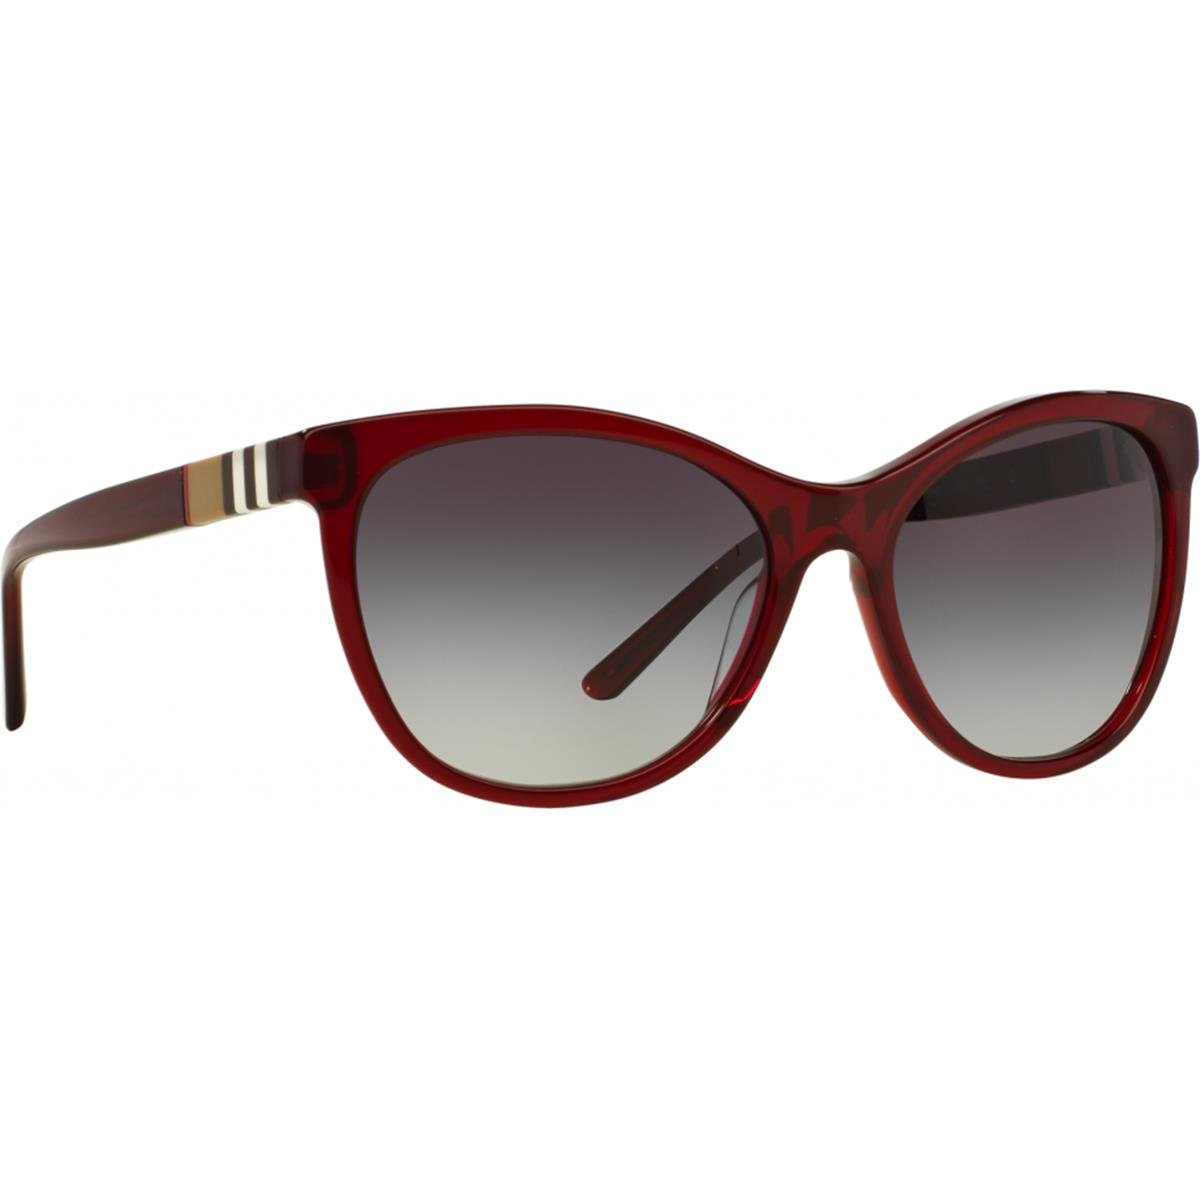 a49f2d85ab36 Burberry Women s 0BE4199 35438G Sunglasses